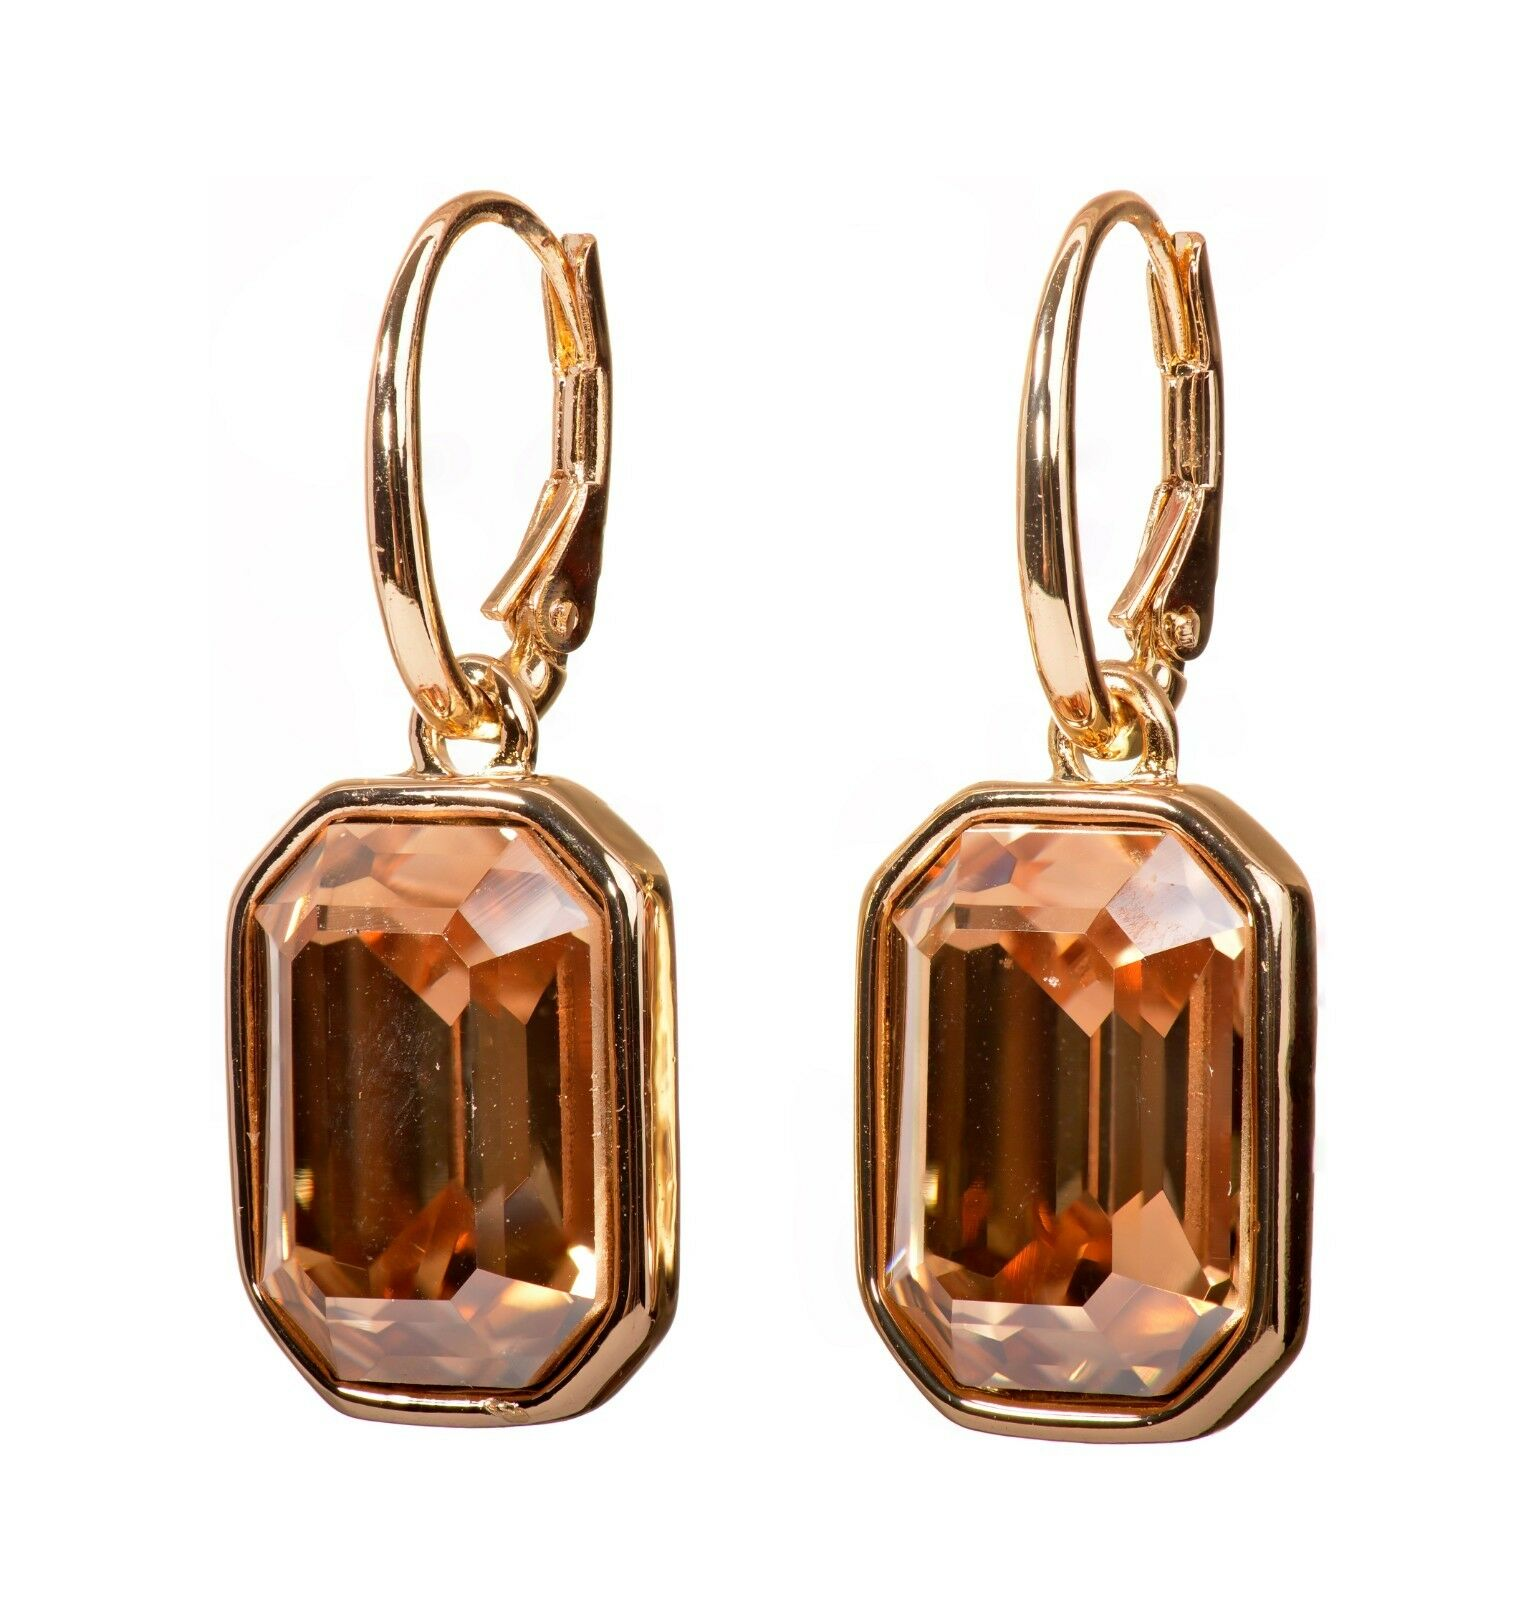 Swarovski Elements Crystal golden Octagon Drop Earrings gold Authentic 7338y